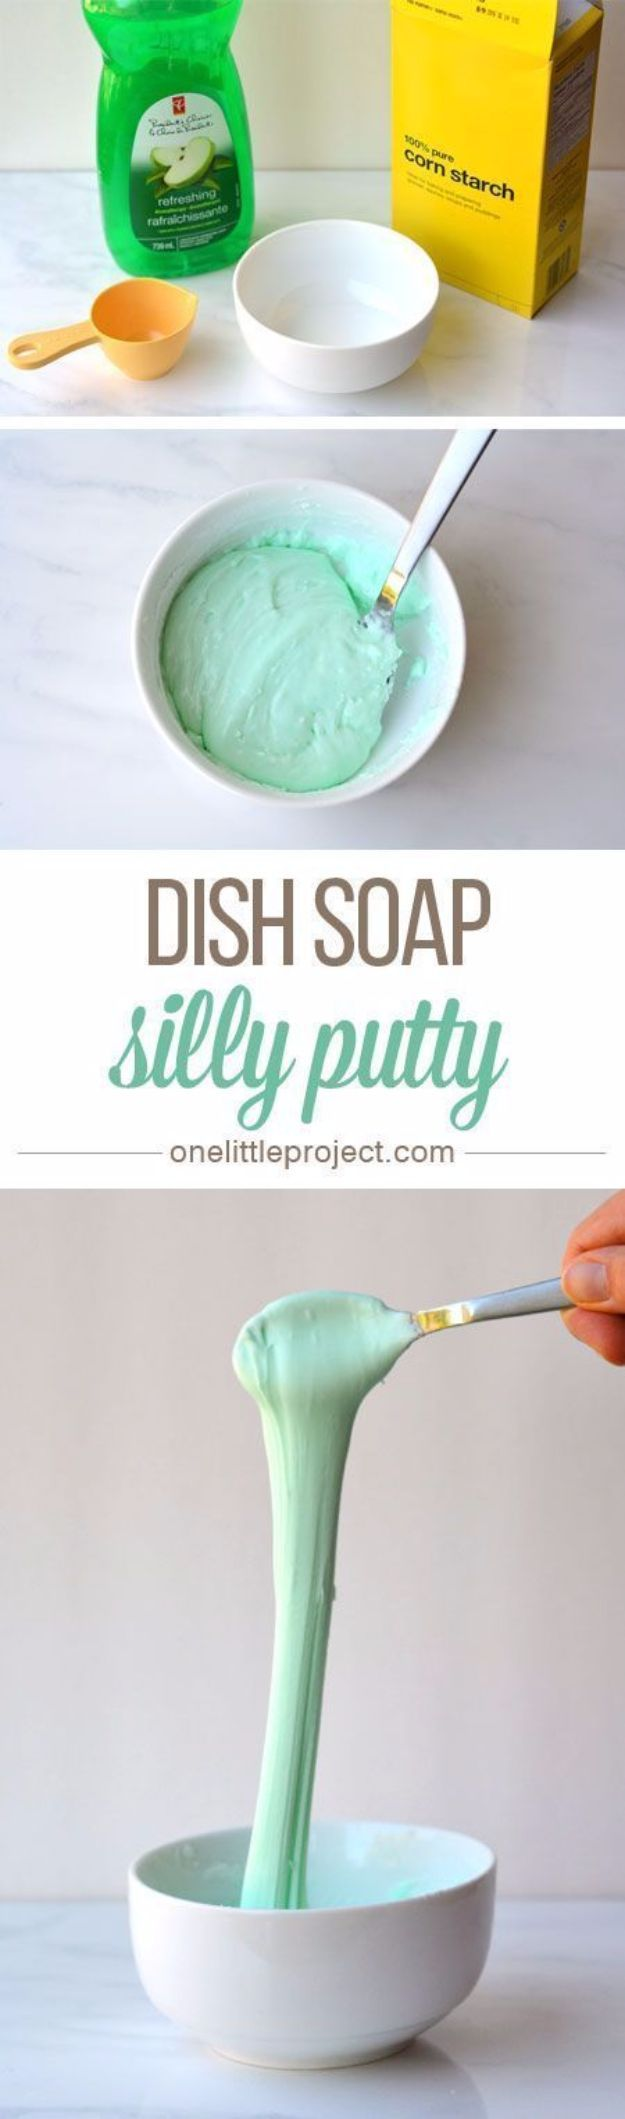 Best DIY Slime Recipes - Dish Soap Silly Putty - Cool and Easy Slime Recipe and Tutorials - Ideas Without Glue, Without Borax, For Kids, With Liquid Starch, Cornstarch and Laundry Detergent - How to Make Slime at Home - Fun Crafts and DIY Projects for Teens, Kids, Teenagers and Teens - Galaxy and Glitter Slime, Edible Slime, Rainbow Colored Slime, Shaving Cream recipes and more fun crafts and slimes http://diyprojectsforteens.com/diy-slime-recipe-ideas